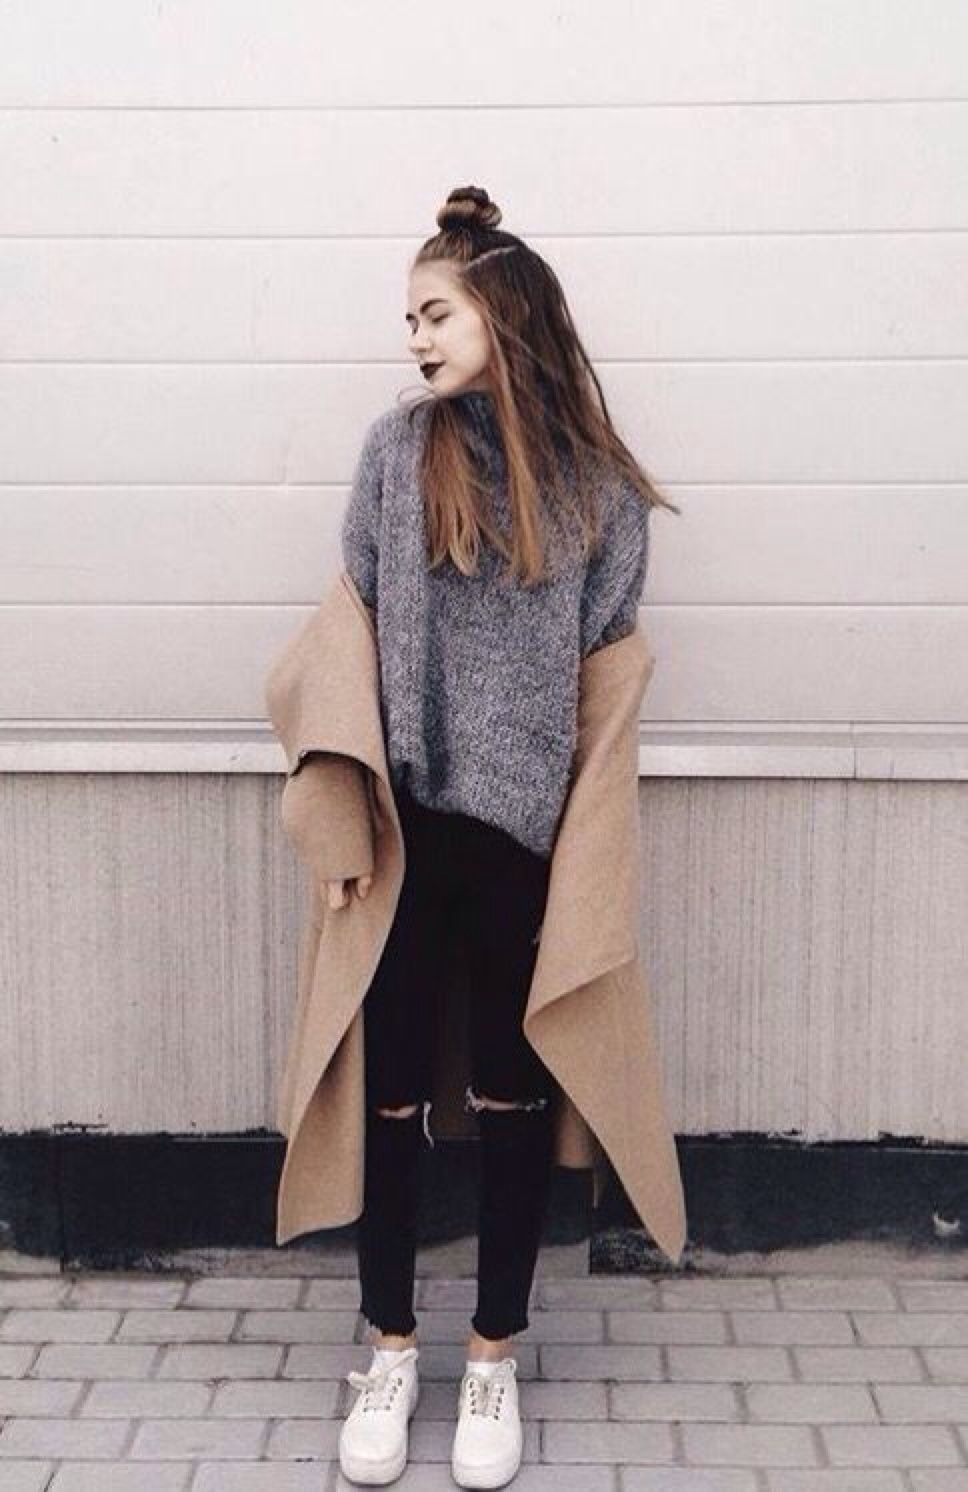 Grunge street outfit for winter pictures photos and images for facebook tumblr pinterest Fashion style girl hiver 2015